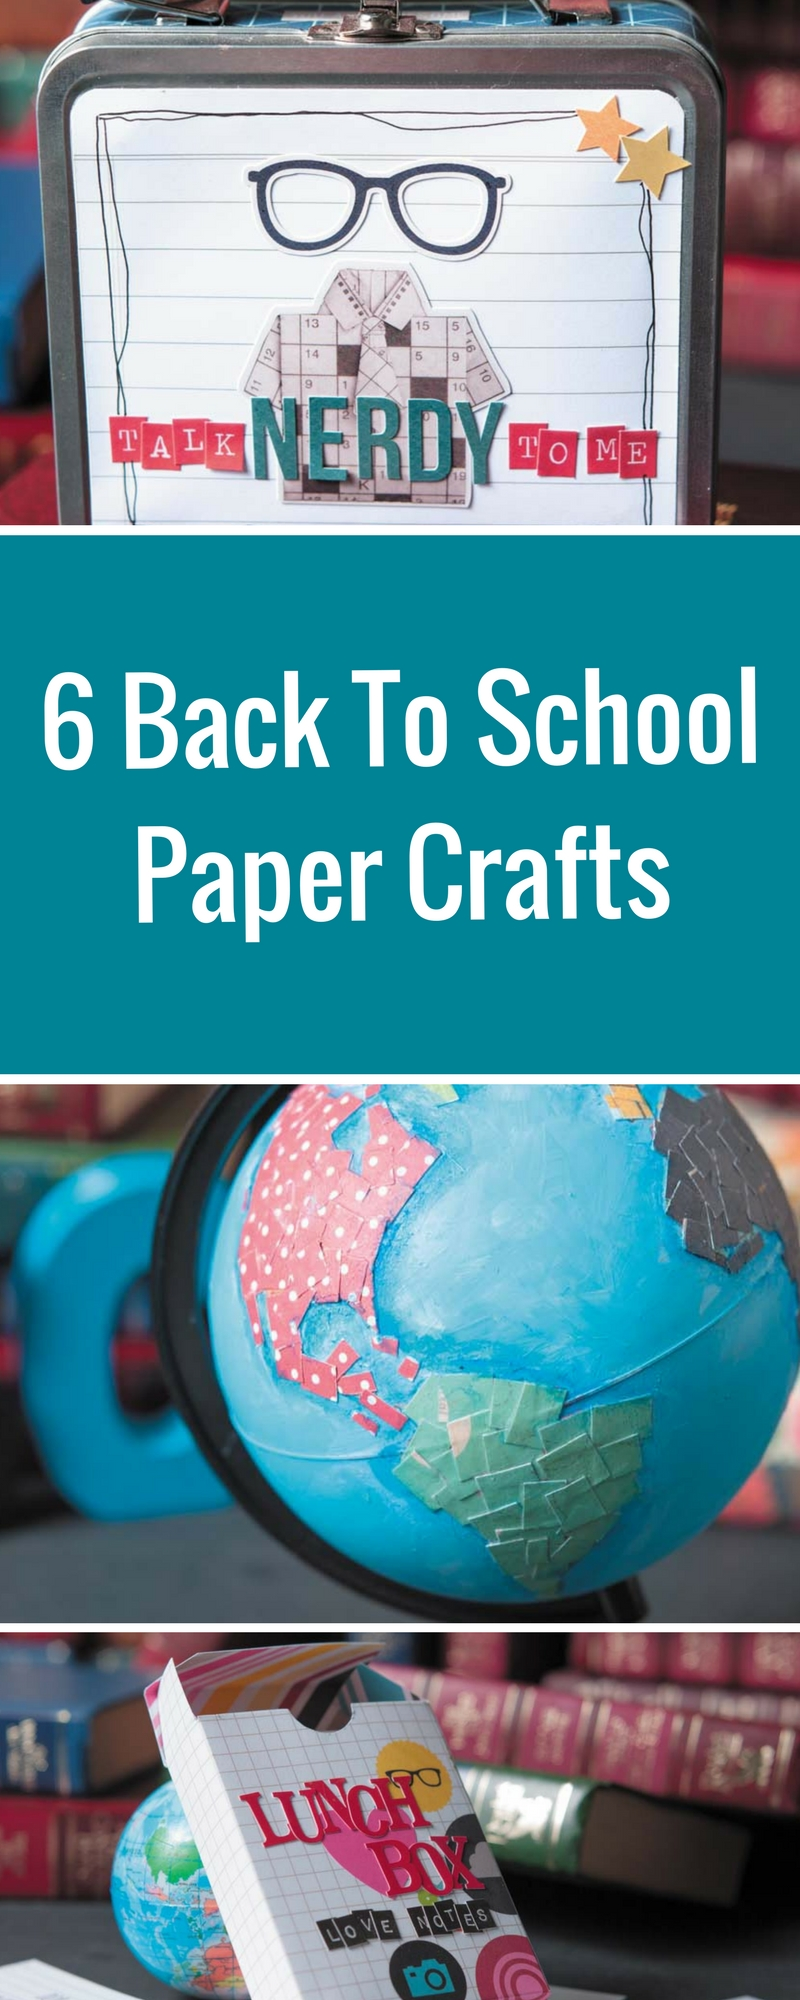 Back To School | Paper Craft Projects | Designed by Christy Riopel | Creative Scrapbooker Magazine #backtoschool #papercrafts